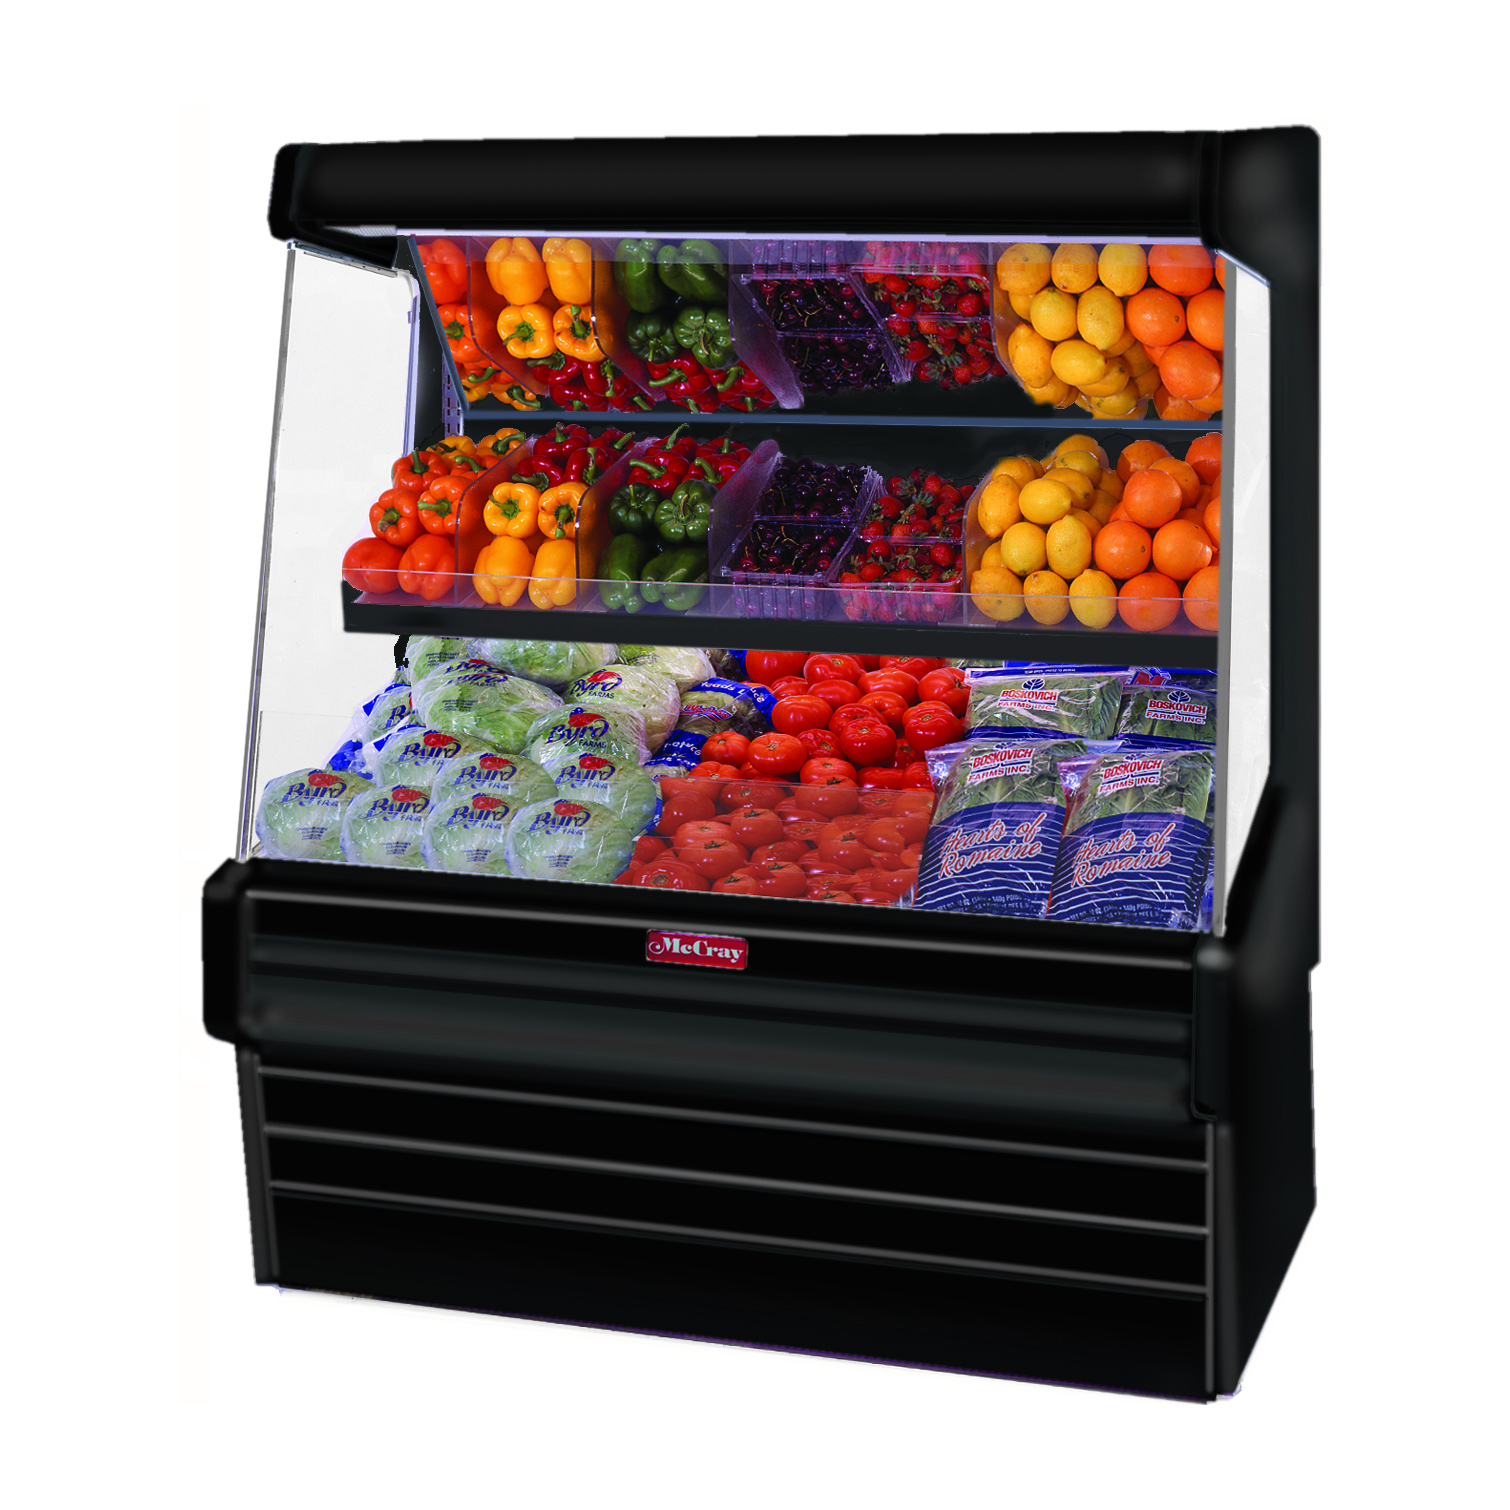 Howard-McCray SC-OP30E-8L-B-LED display case, produce